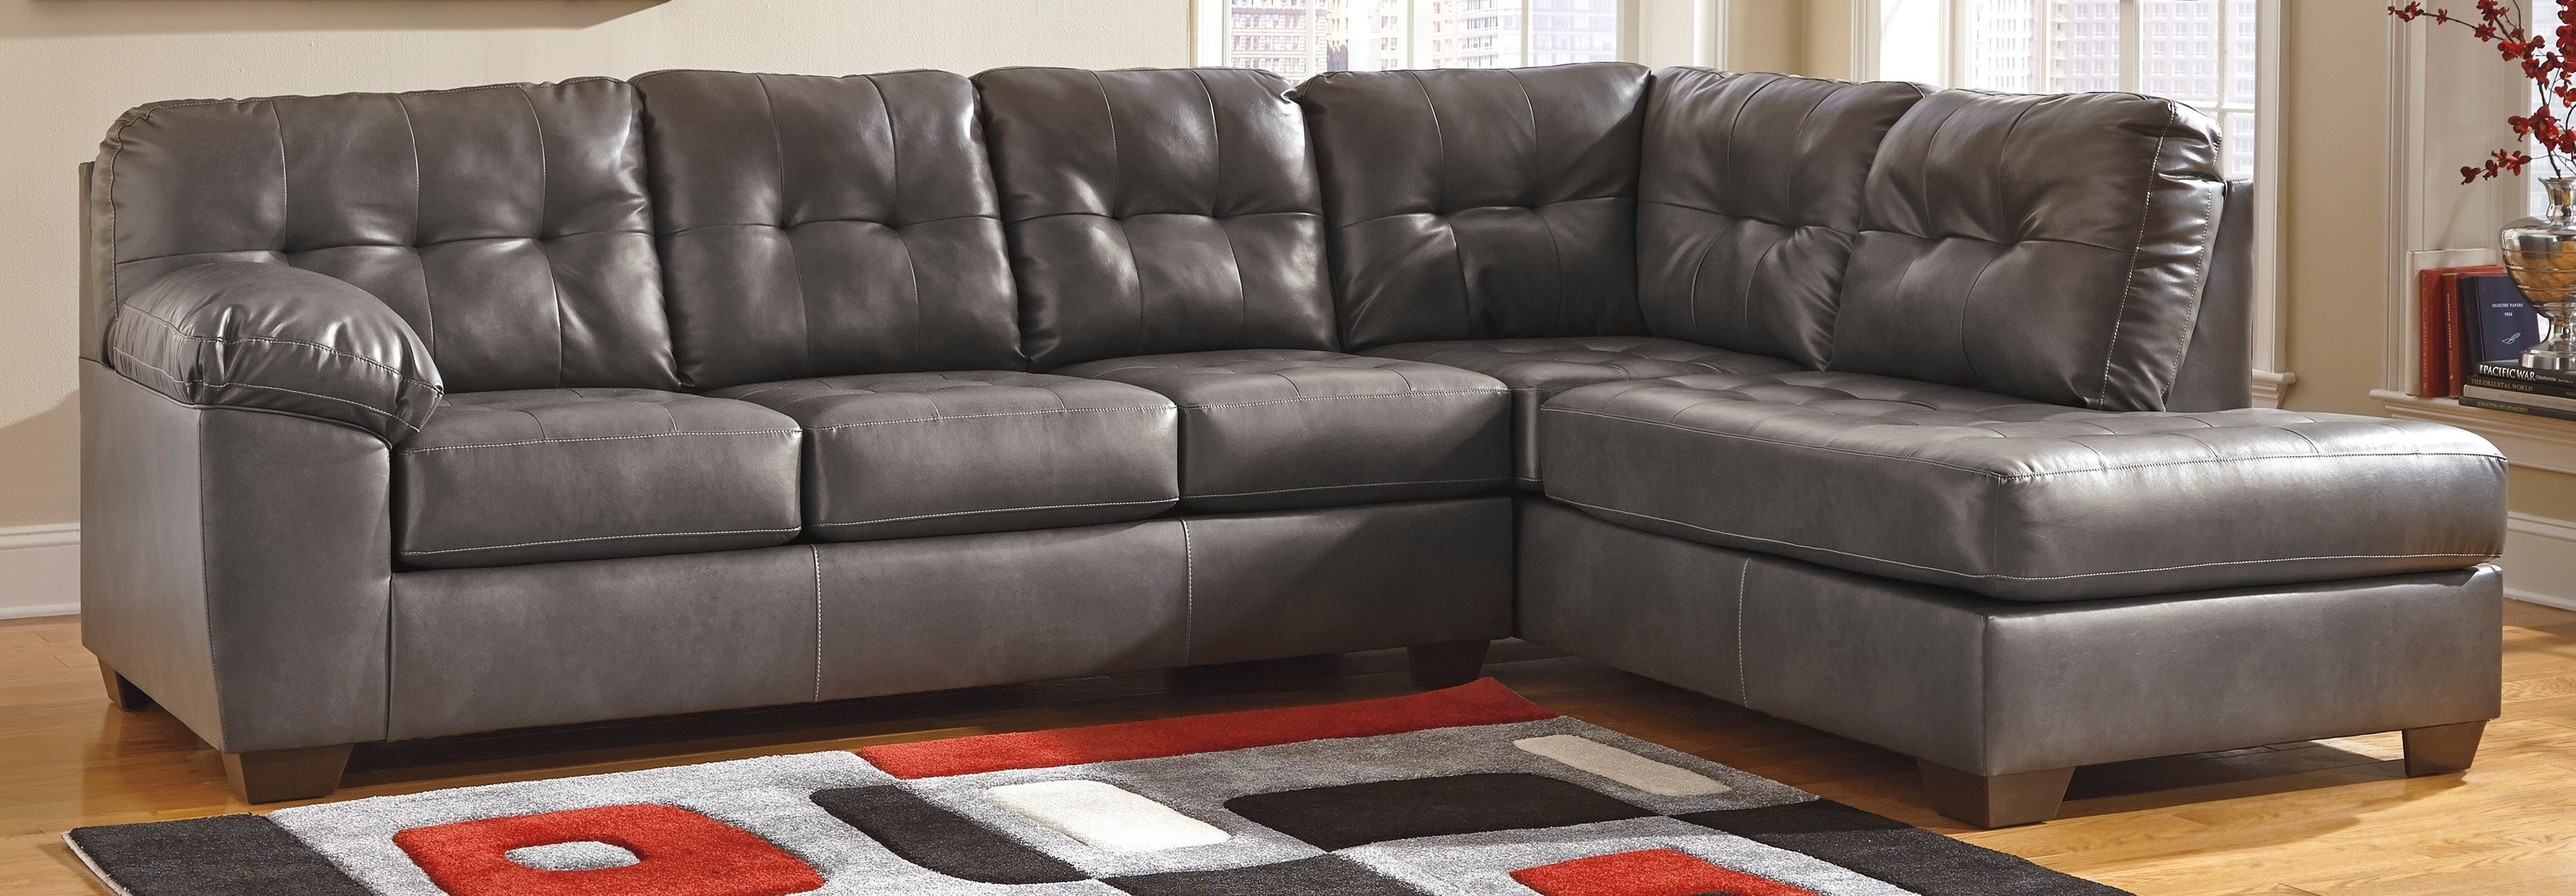 Ashley Tufted Sofas In Widely Used Buy Ashley Furniture 2010267 2010216 Alliston Durablend Gray Laf (View 6 of 20)